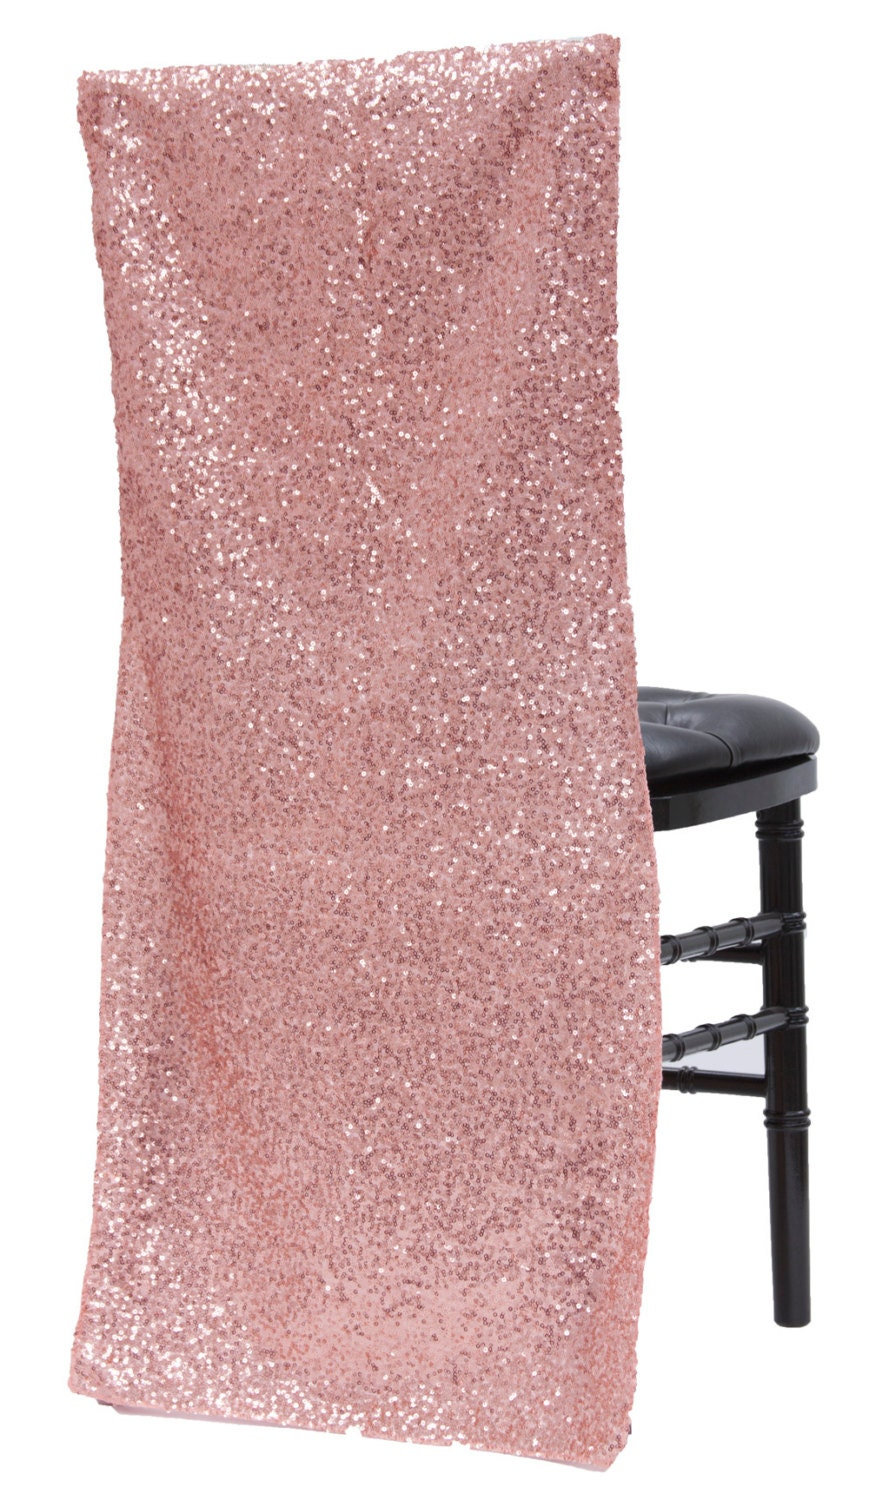 Bulk 100 Sparkly Rose Gold Chair Covers Full By Sparklesoiree